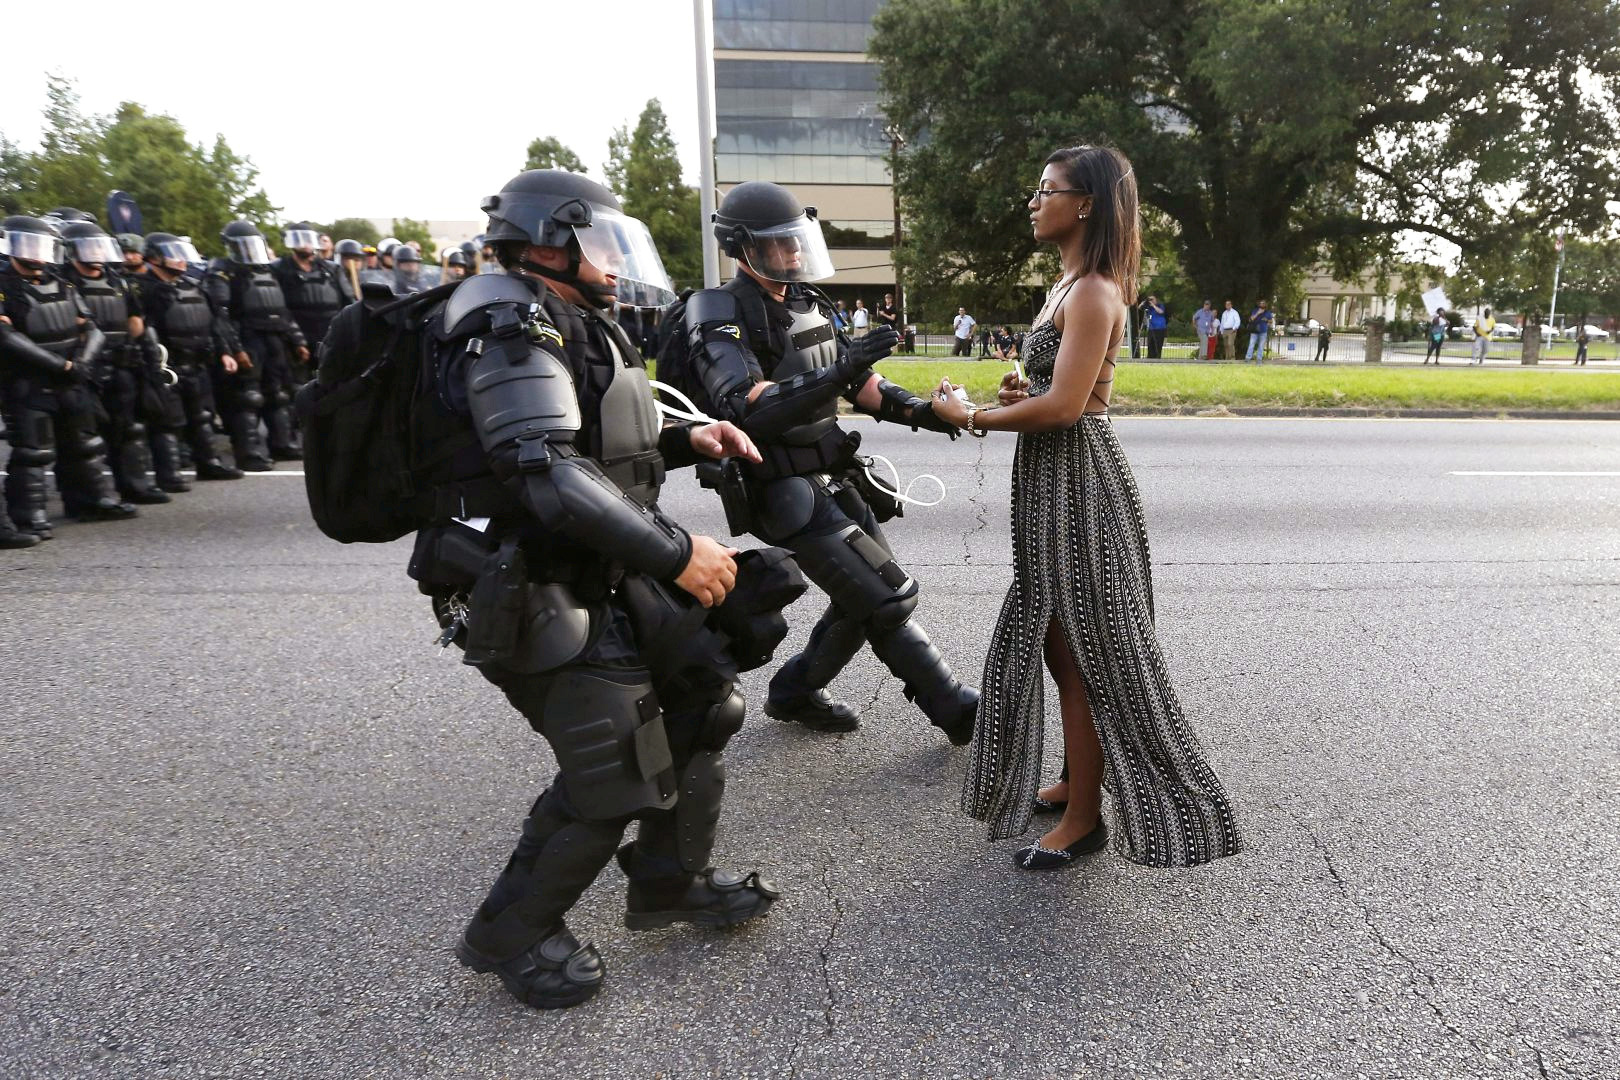 FILE PHOTO -- Lone activist Ieshia Evans stands her ground while offering her hands for arrest as she is charged by riot police during a protest against police brutality outside the Baton Rouge Police Department in Louisiana